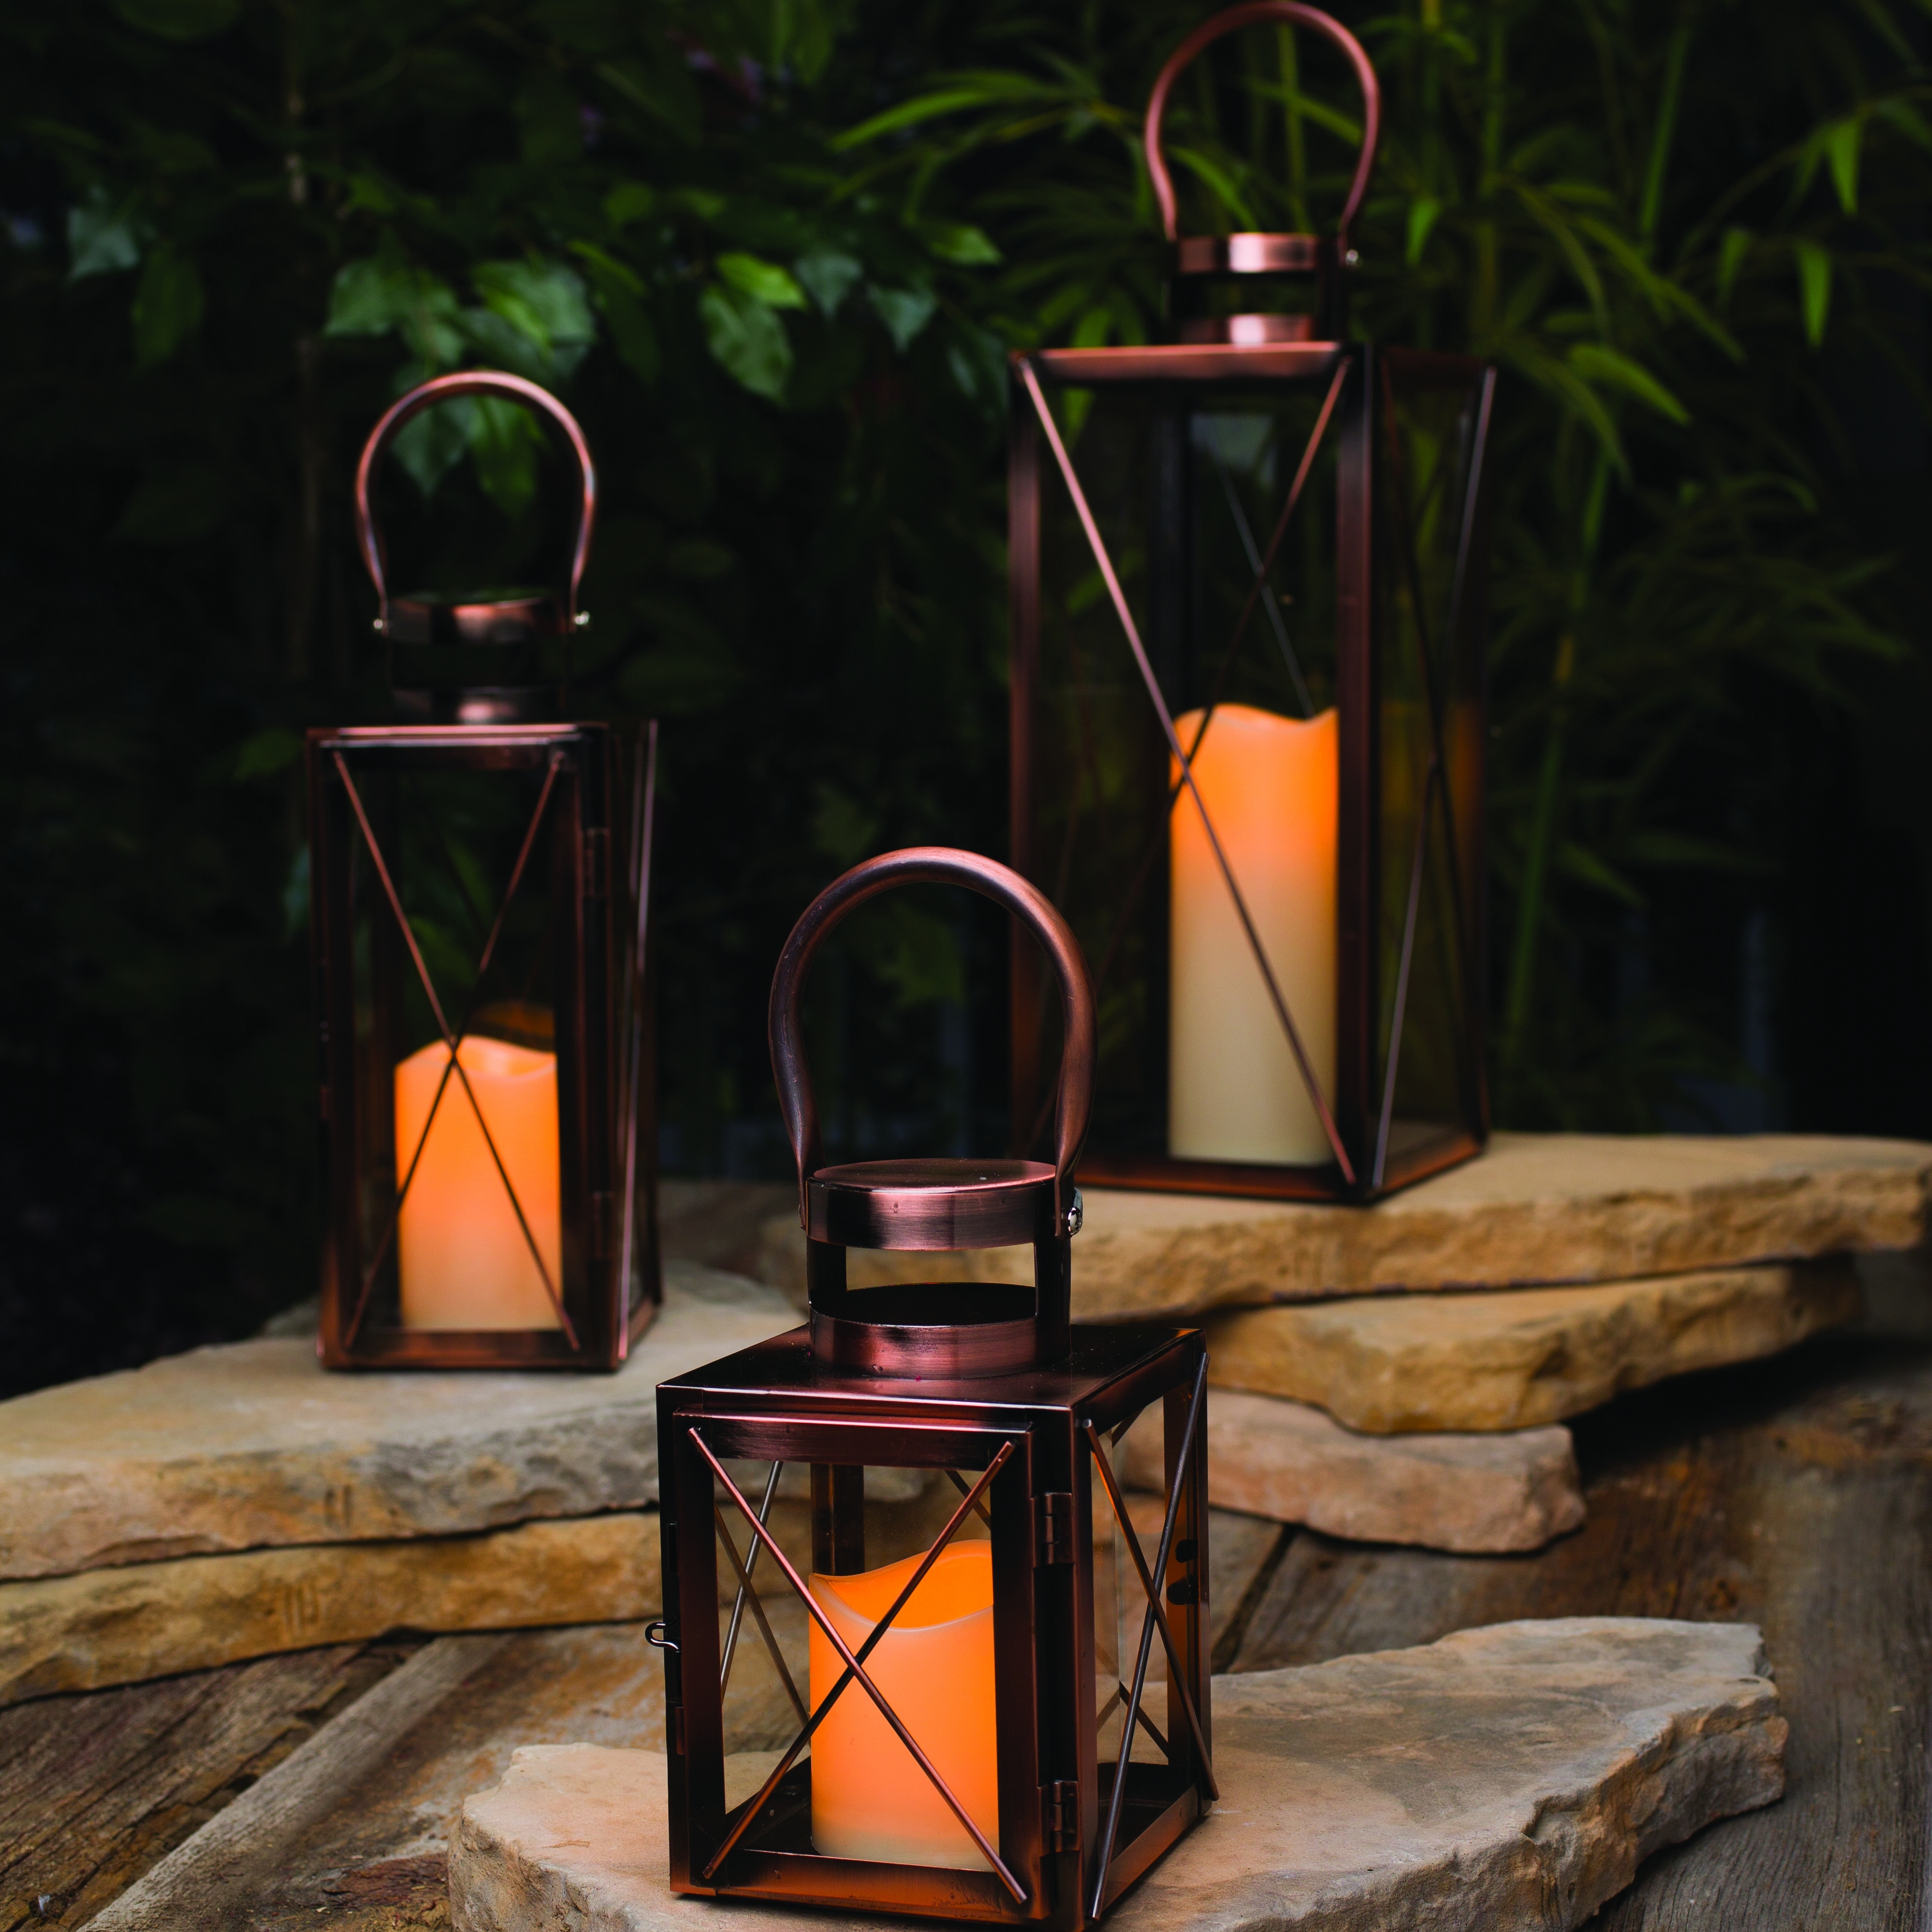 Current Outdoor Electric Candle Lighting Bamboo Lanterns For A Pool Party Intended For Outdoor Bamboo Lanterns (View 17 of 20)